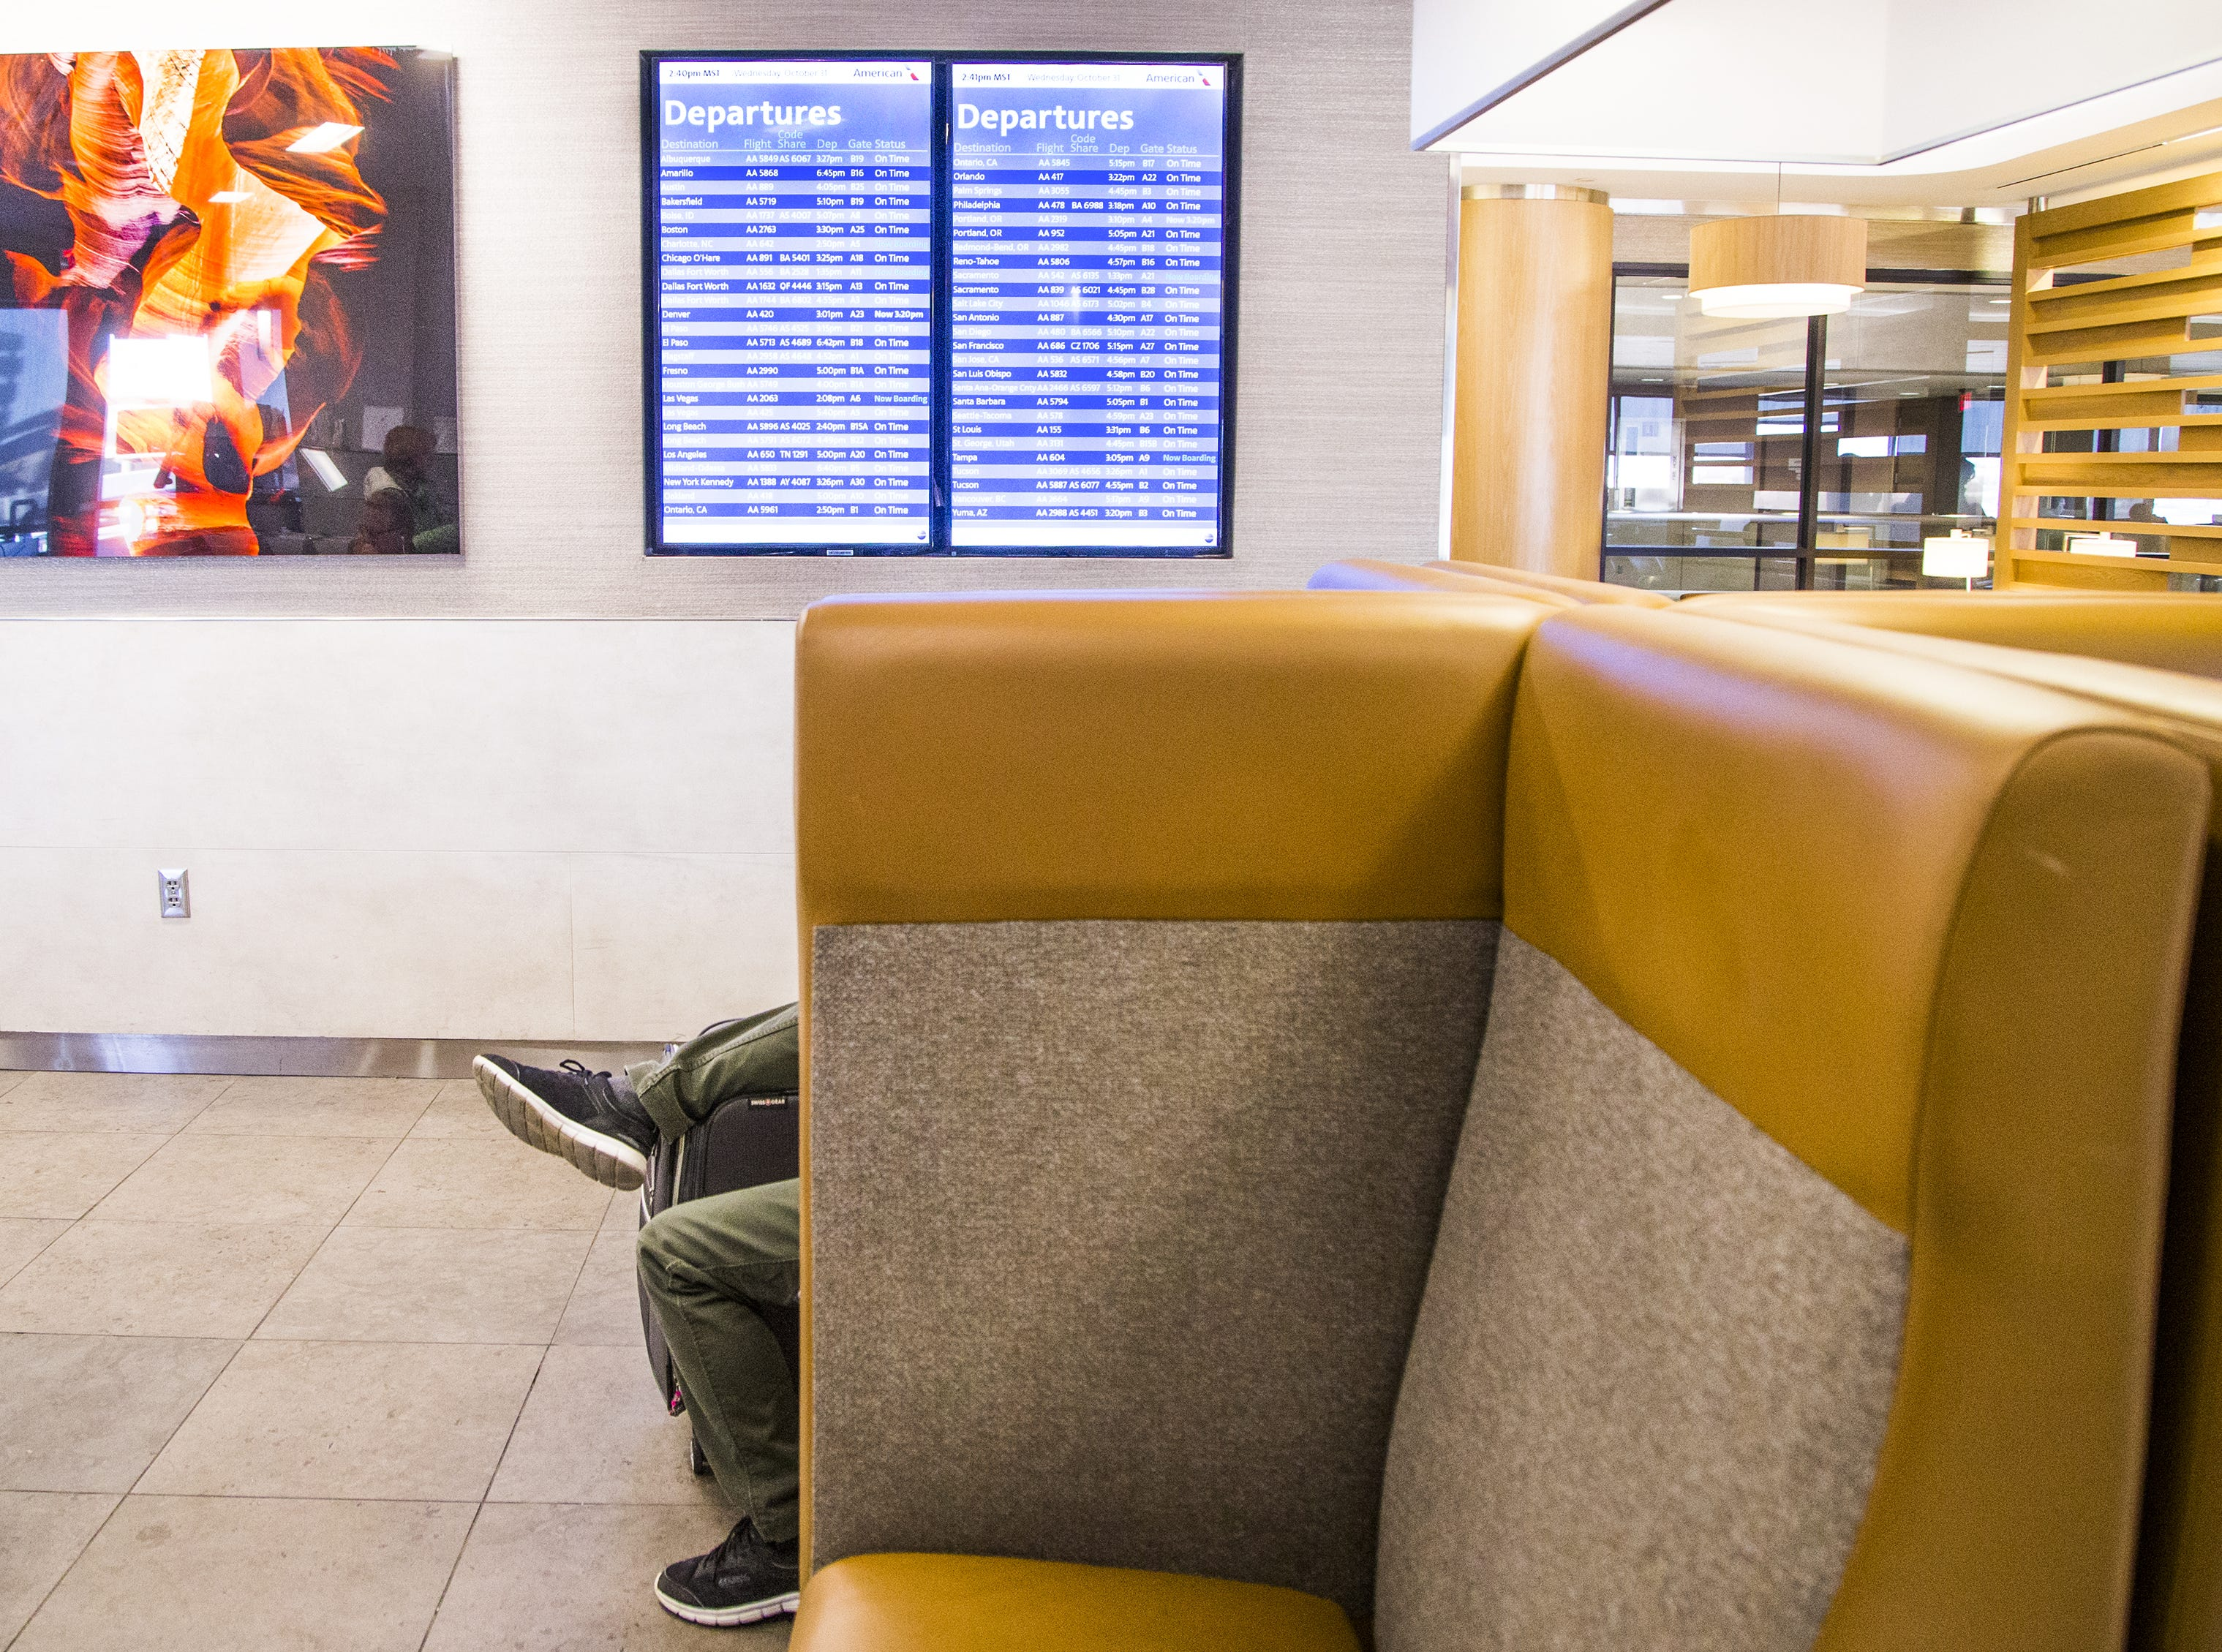 A customer relaxes in the American Airlines Admirals Club in Terminal 4 at Sky Harbor International Airport, Wednesday, October 31, 2018.